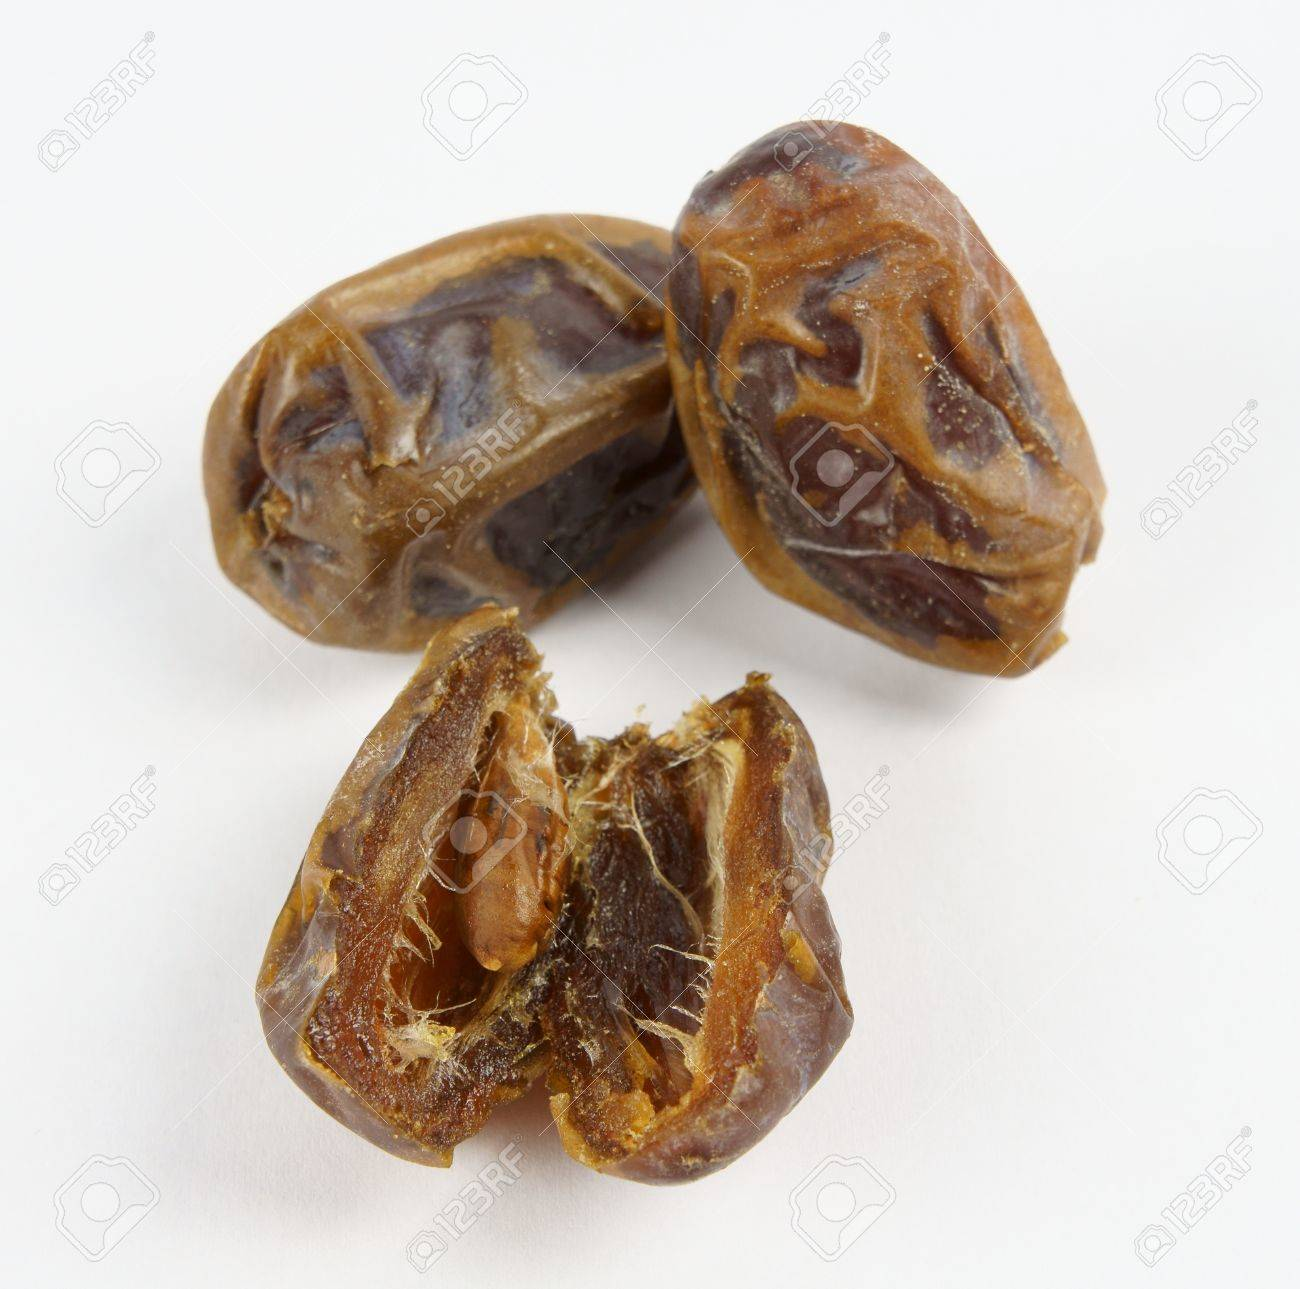 Medjoul date in focus cut up showing the seed in front of two whole fruits; on neutral white background. Stock Photo - 12826748